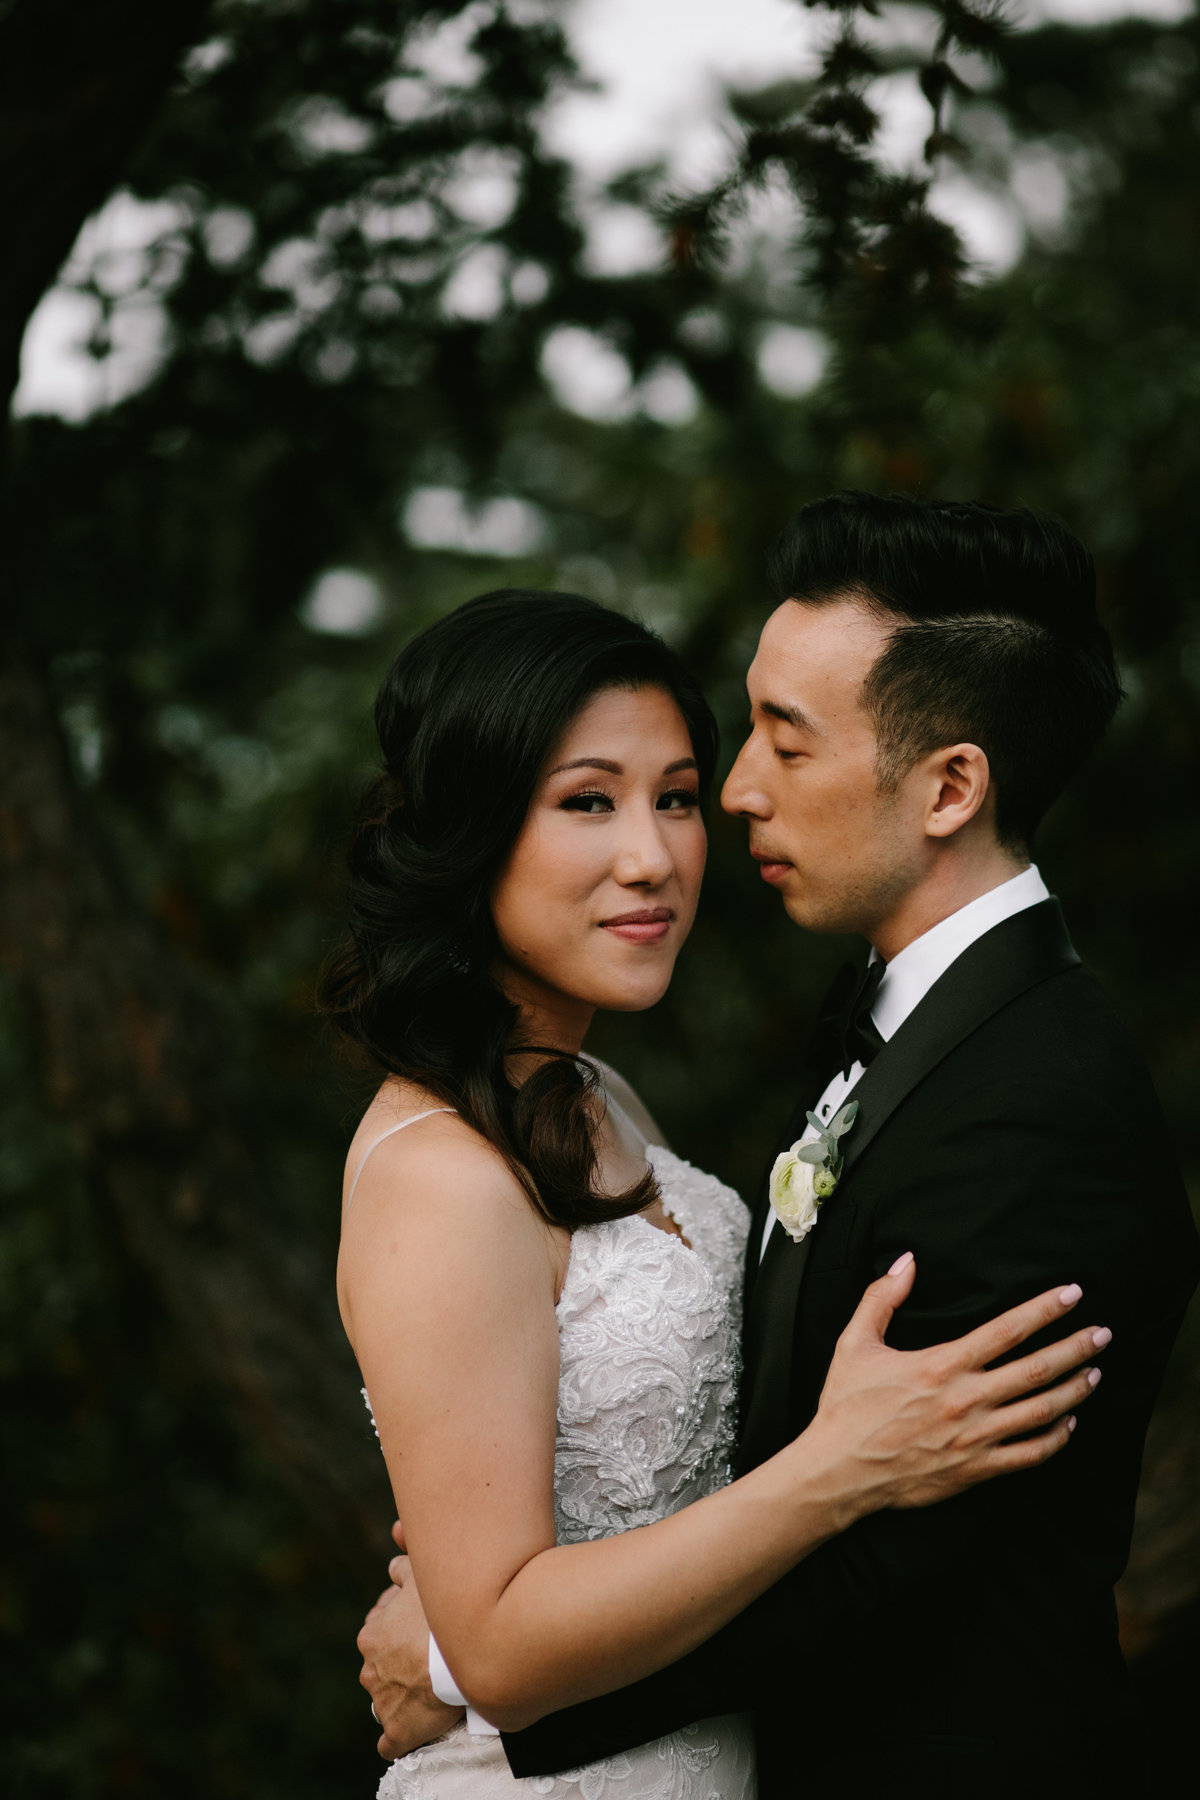 SEATTLE WEDDING 2018-TIARRASORTE-SEATTLE-2